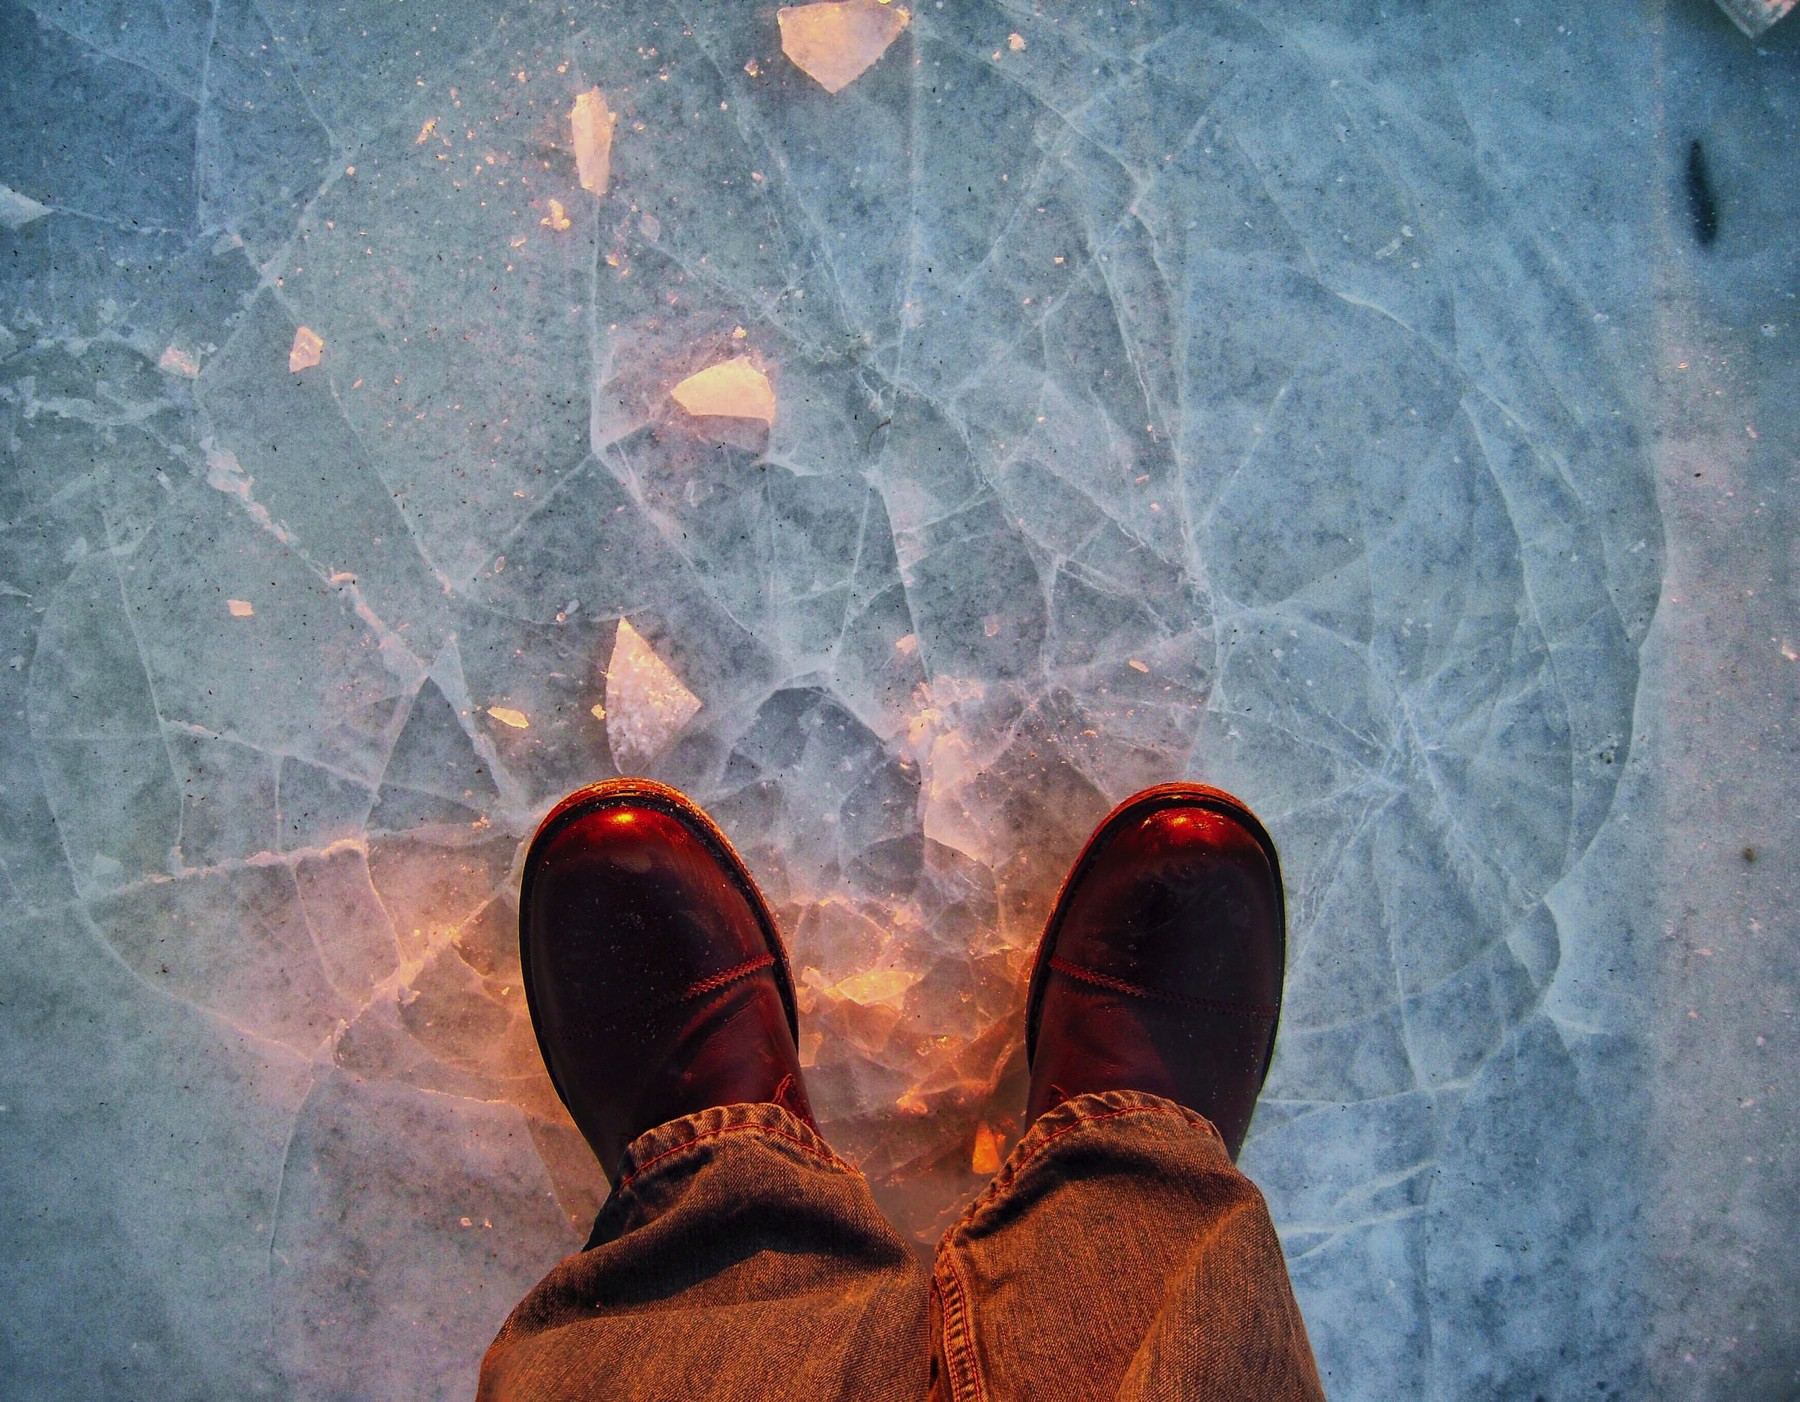 A pair of boots on top of a frozen lake.